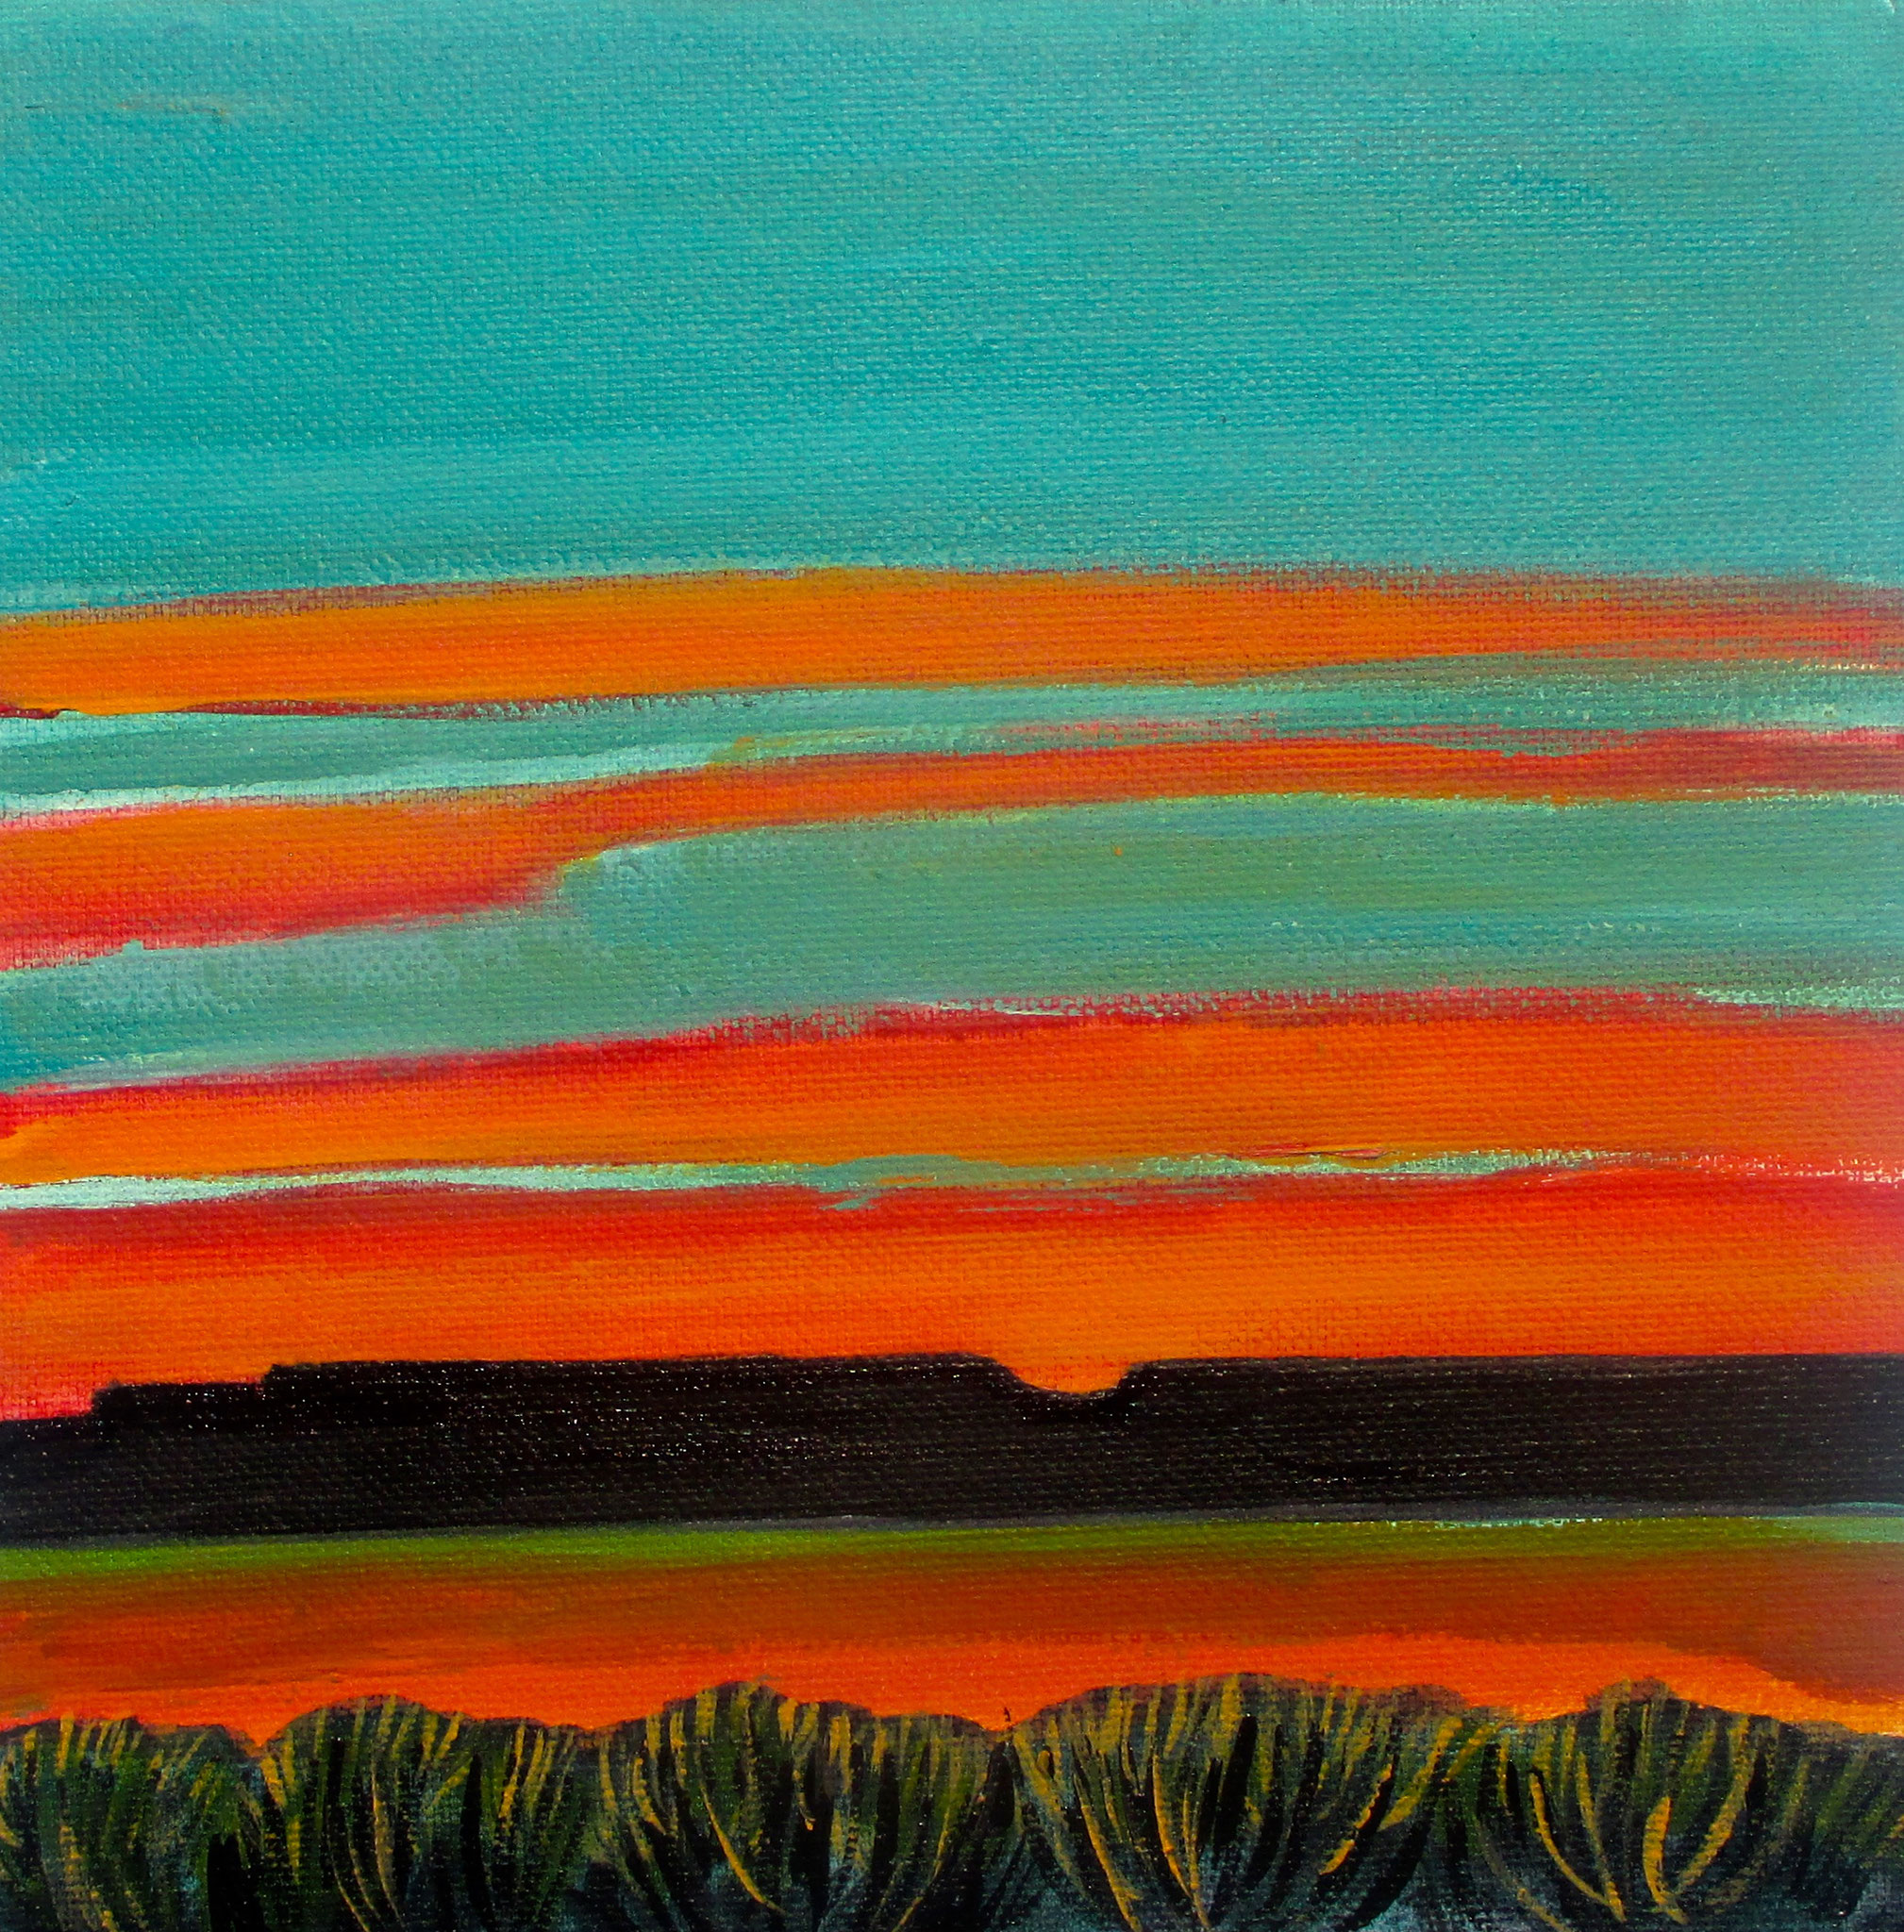 Veridian Sunset, acrylic on canvas, 12 x 12, 2019 SOLD